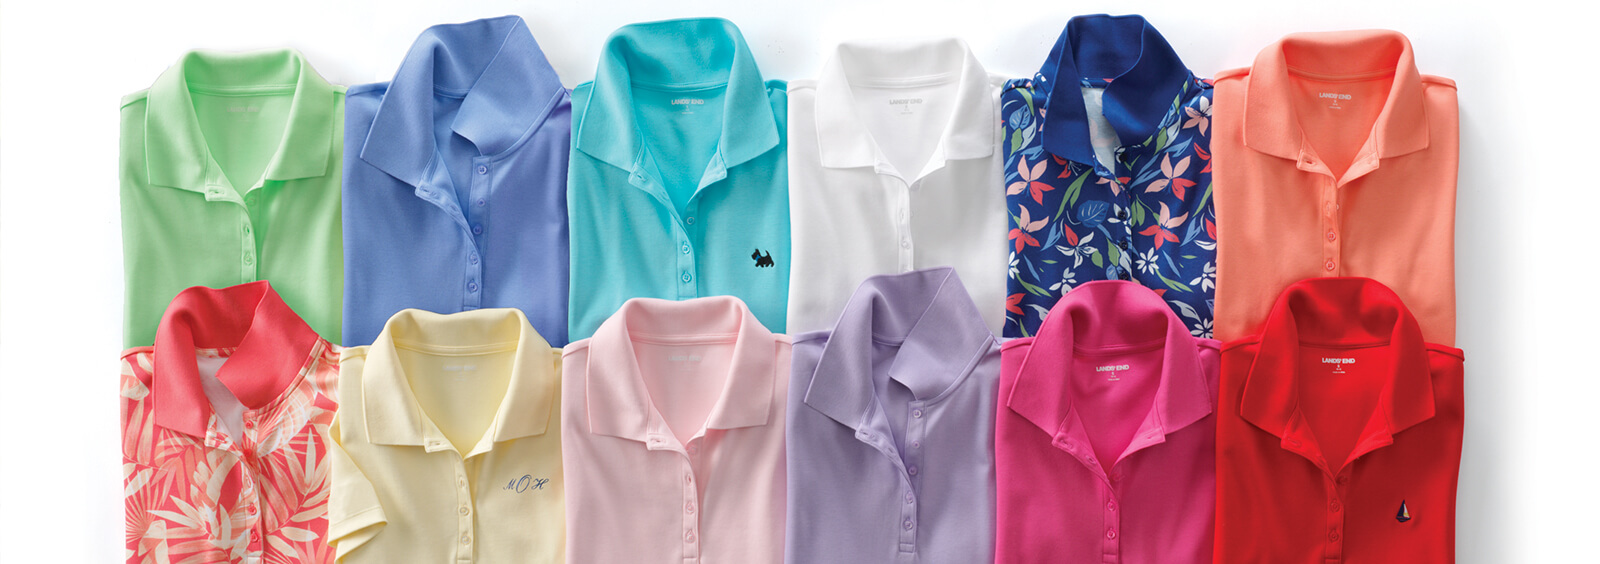 Are Polos Business Casual